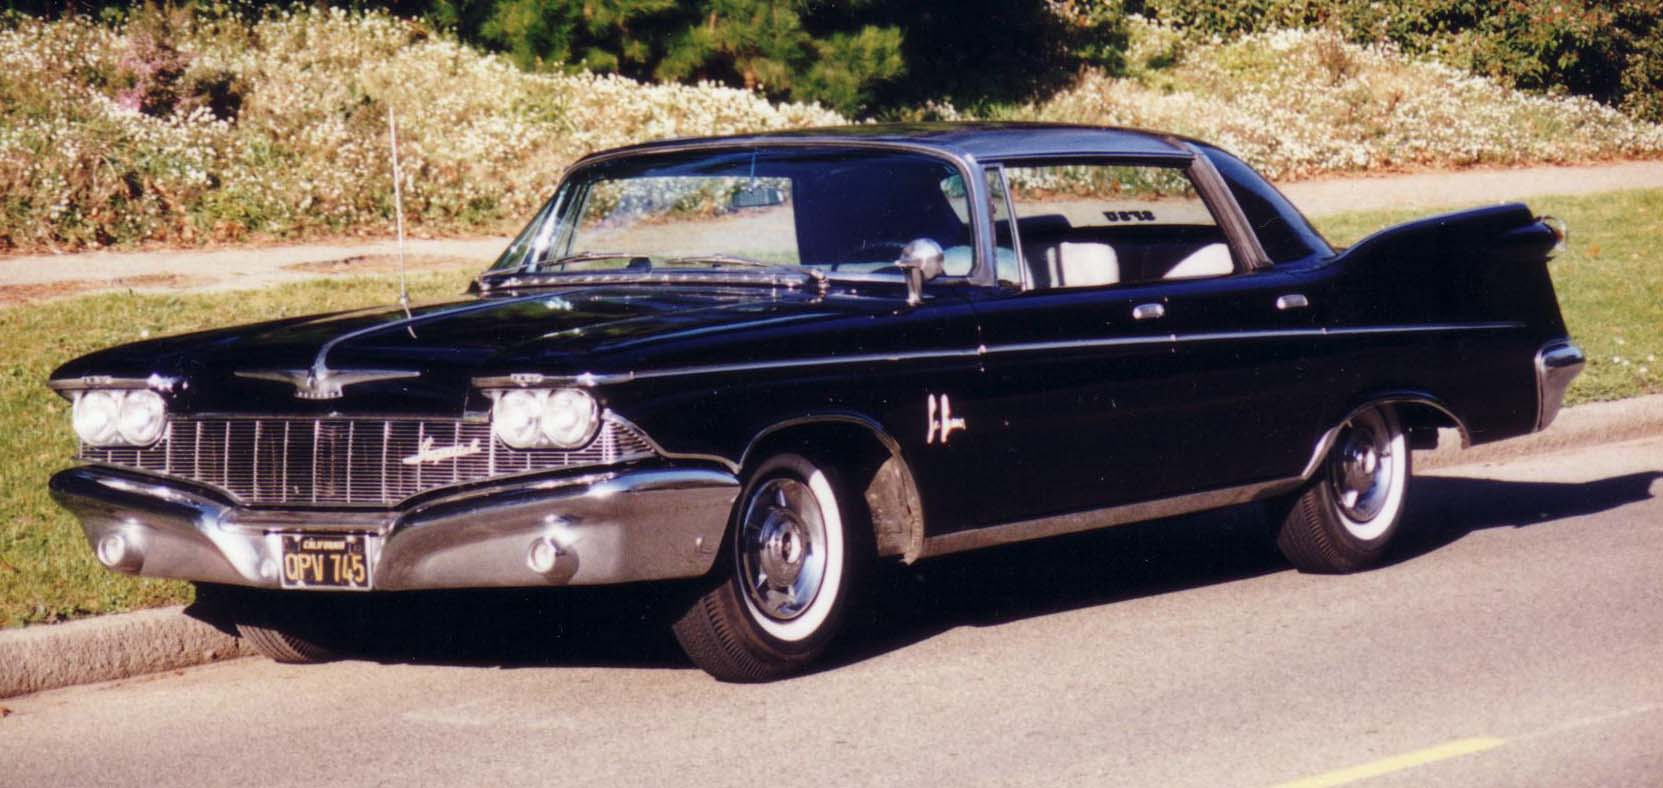 1960 chrysler imperial lebaron information and photos momentcar. Cars Review. Best American Auto & Cars Review